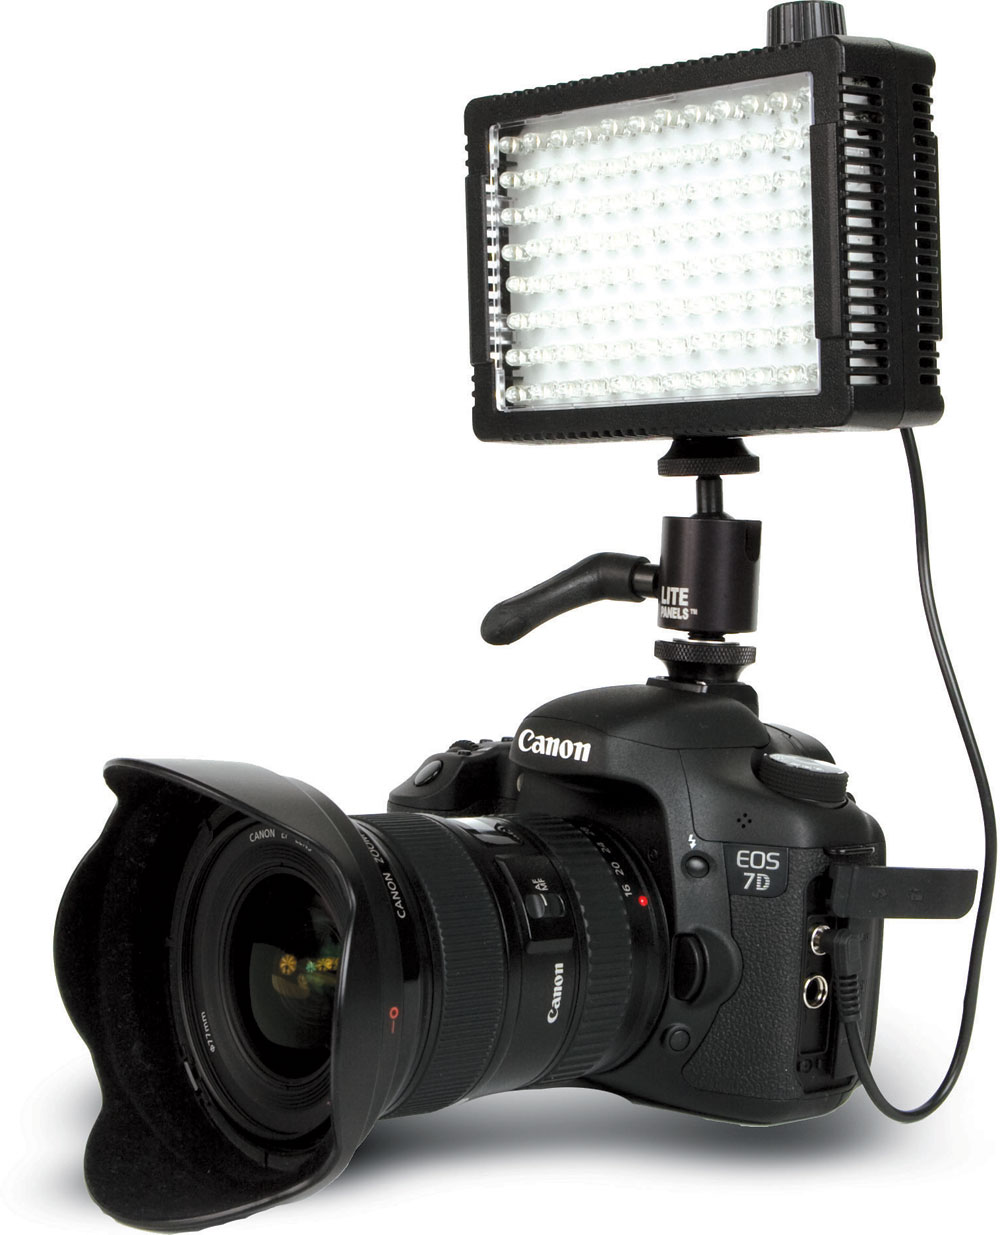 Led Light Fixture Flashing On And Off: Litepanels Introduces New MicroPro Hybrid